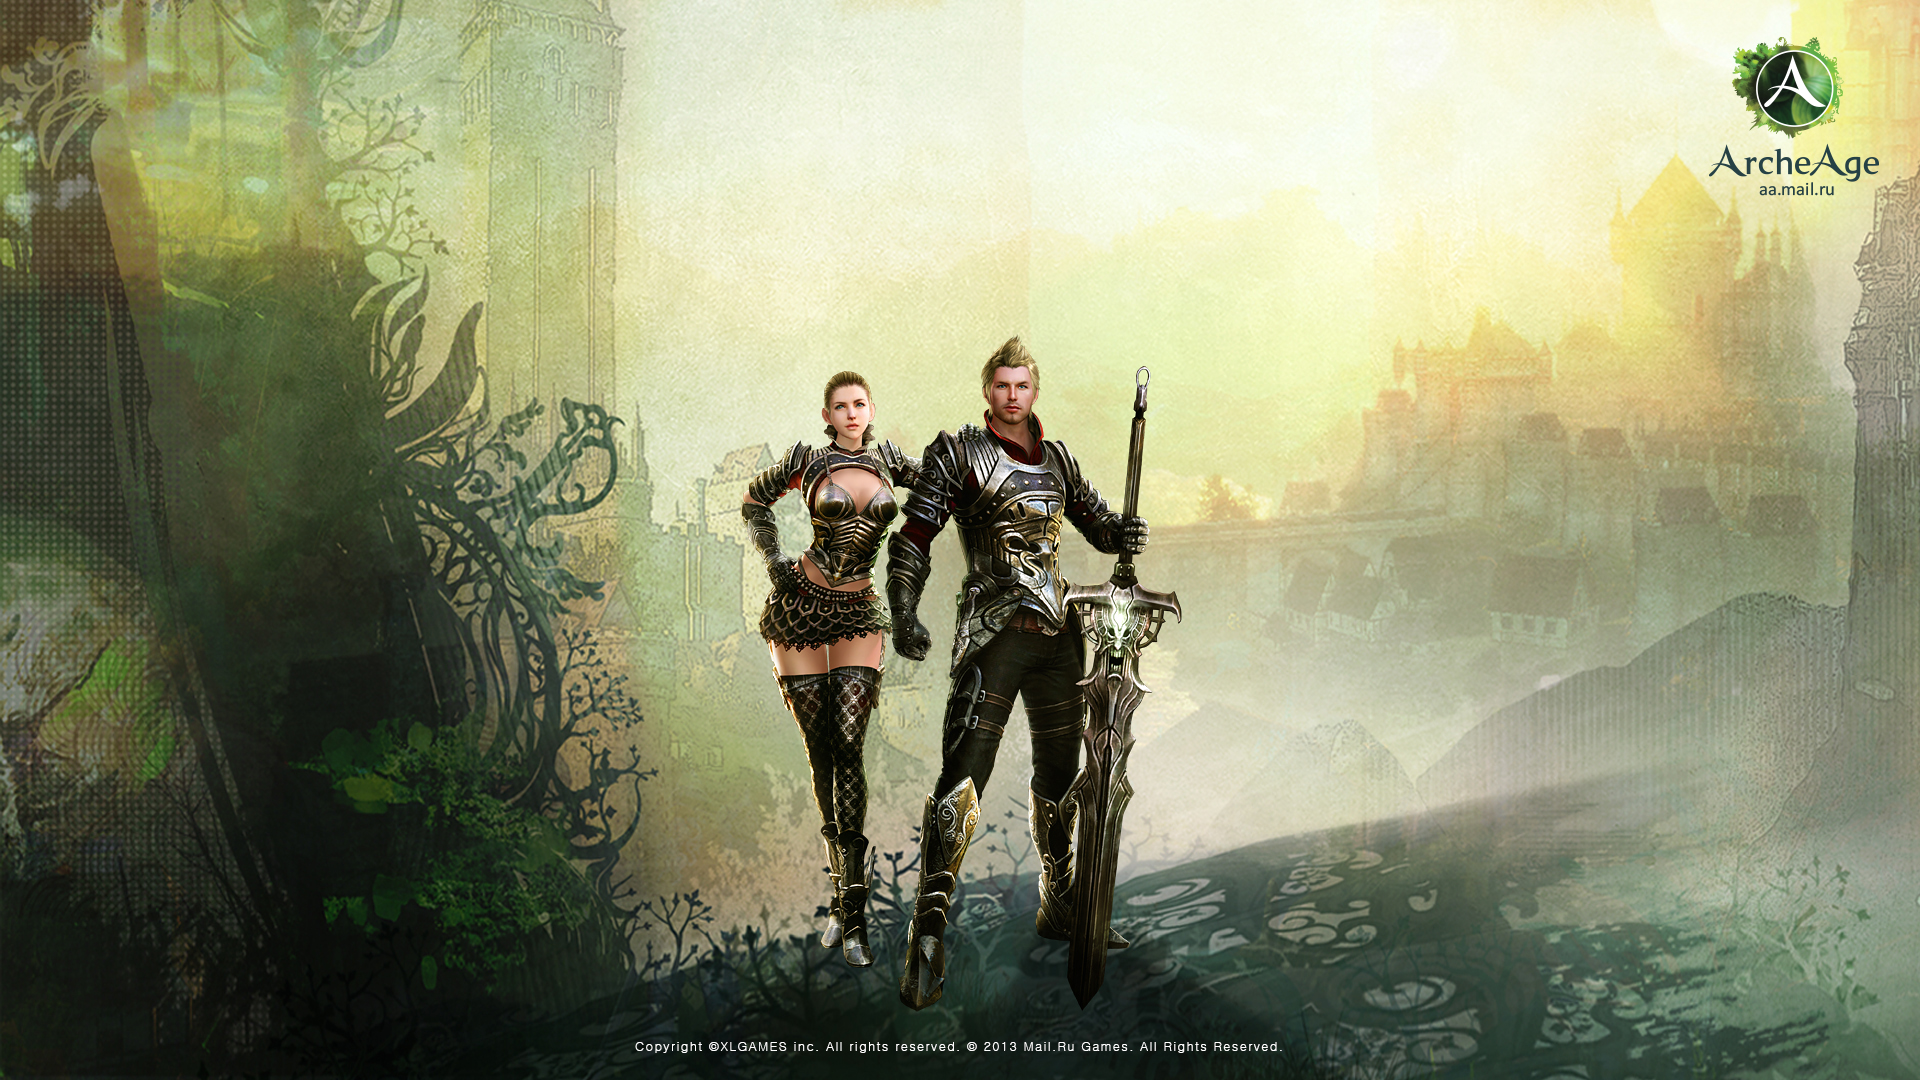 1920x1080 - ArcheAge HD Wallpapers 35